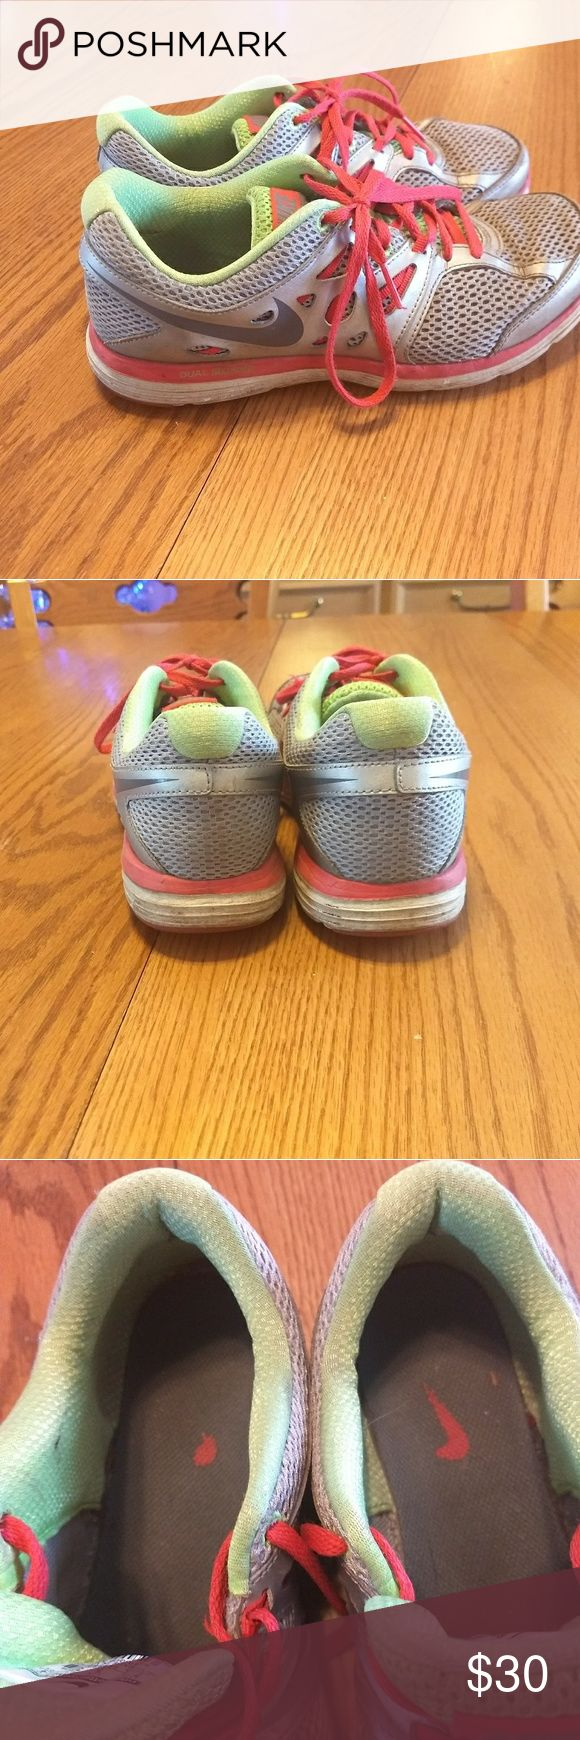 Women's Nike Dual Fusion sneakers Size 7.5 silver gray, orange and green Dual Fusion running shoes. Still loads of wearability. No rips in the toe mesh, no wear thru in the fabric of inside heels. Soles in great shape with even wear. Nike Shoes Athletic Shoes